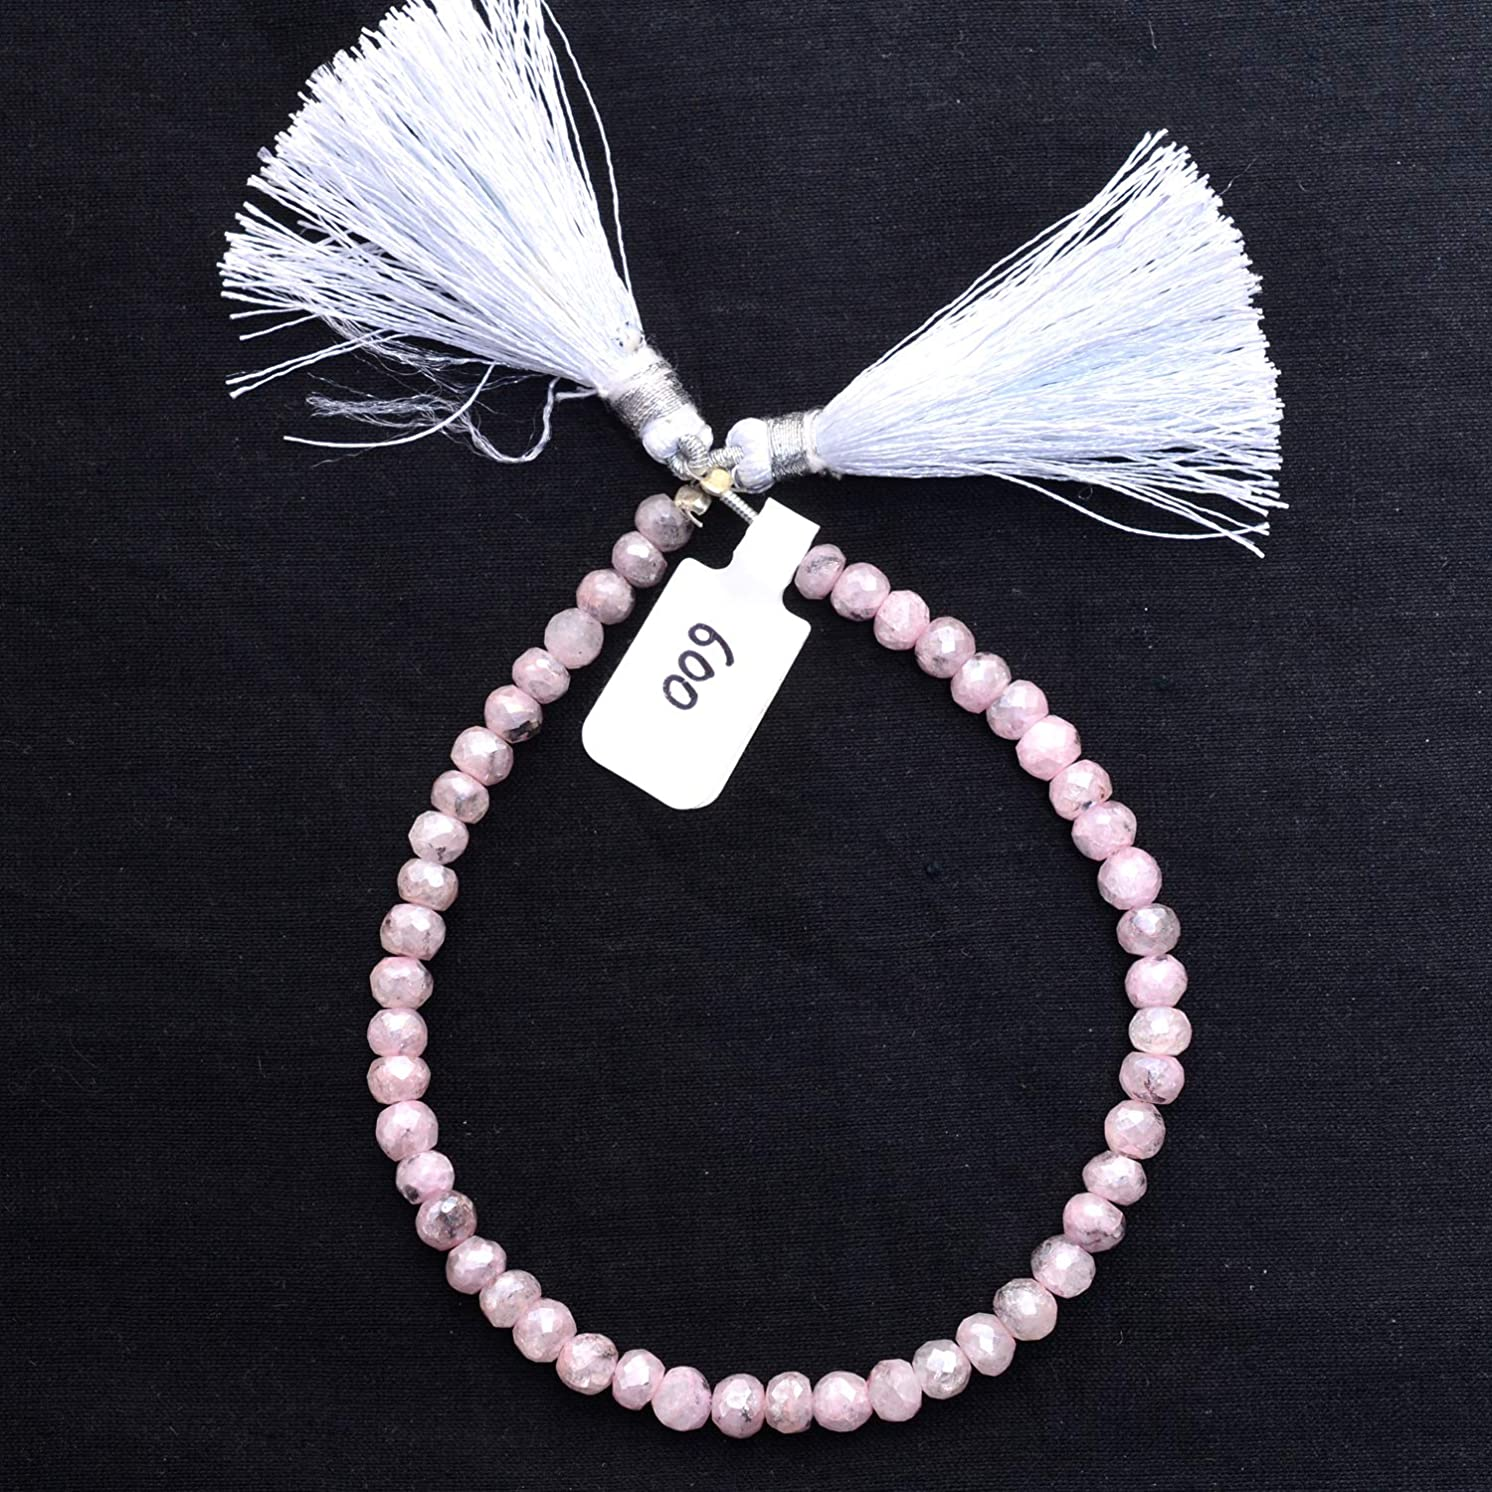 Natural Mystic Pink Grepolite, Listed by BESTINBEADS, AAA Quality Faceted rondelle Straight Drill semi Precious Gemstone Bead Strand 4 inches Long.